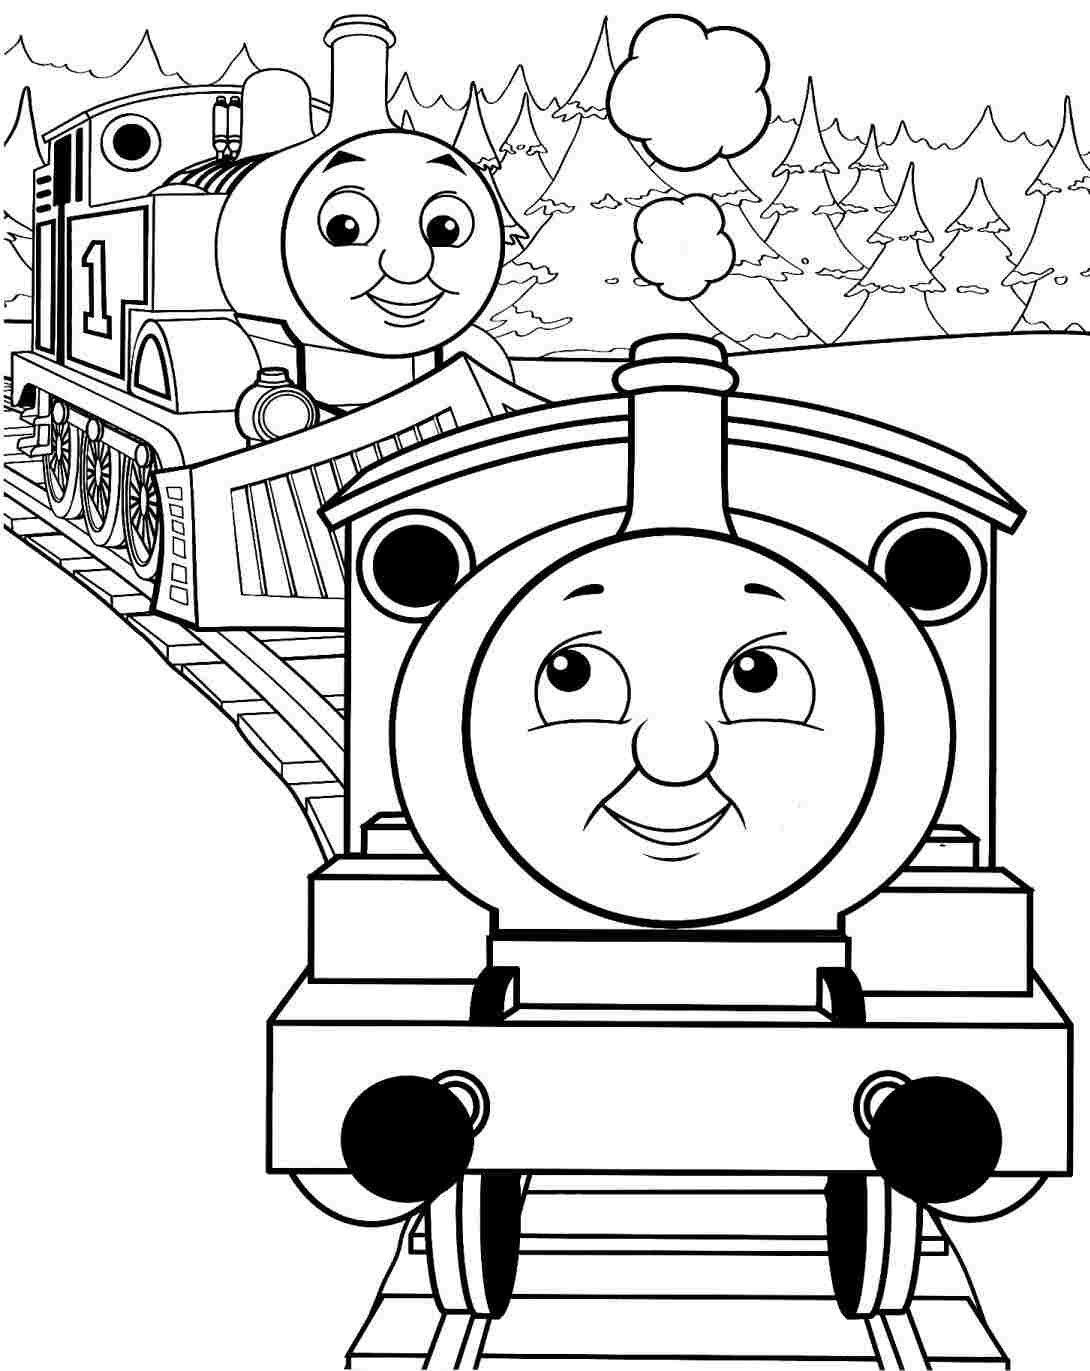 thomas and friends coloring free printable railway pictures thomas scenery drawing for and coloring friends thomas